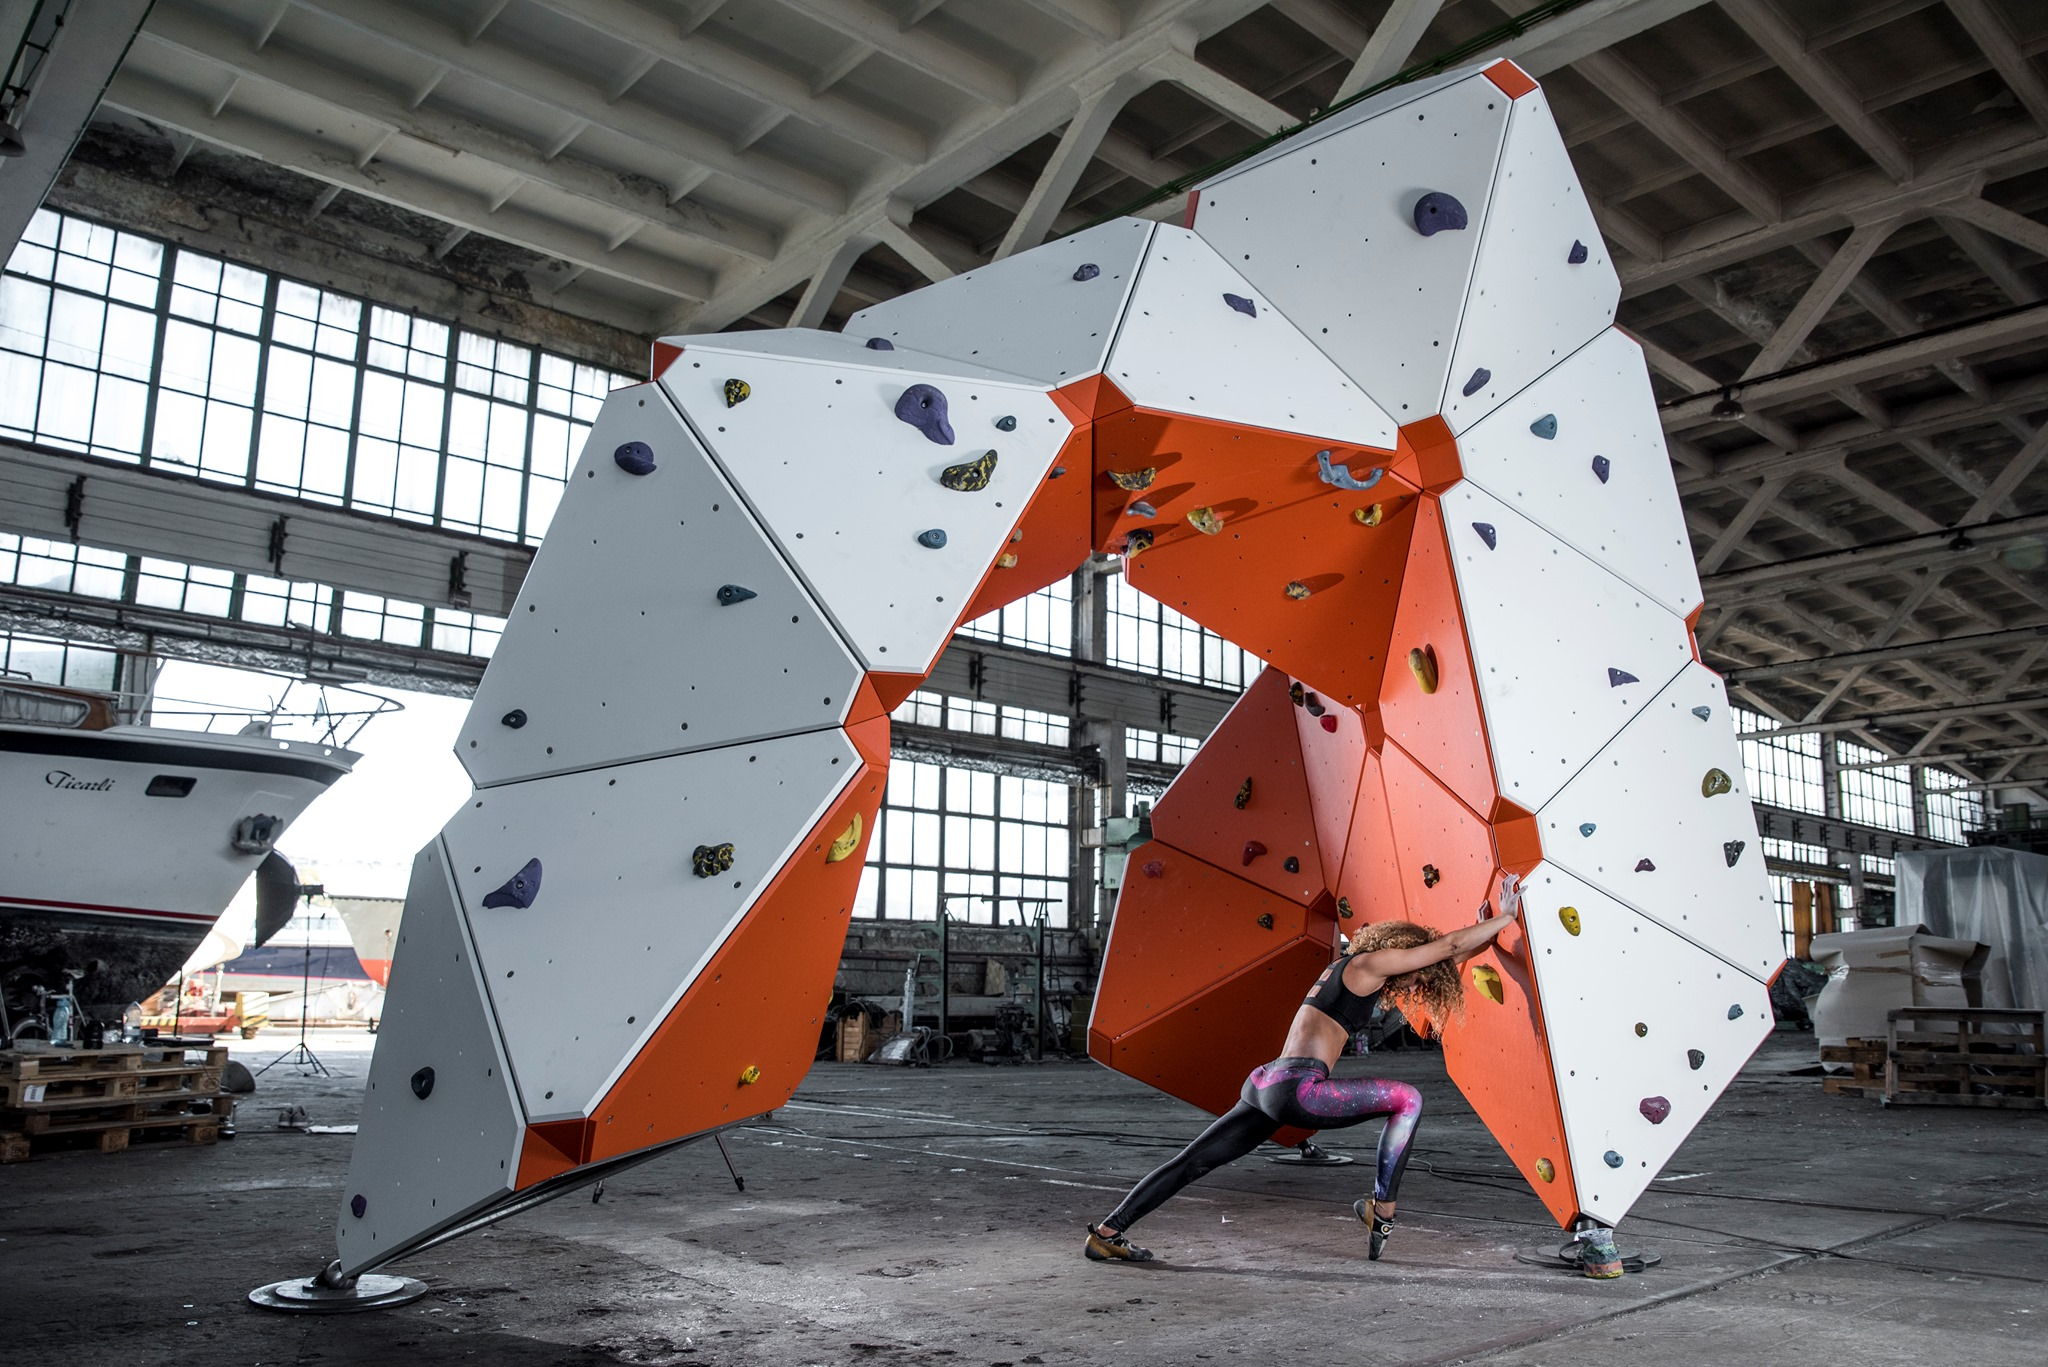 Are These Modular Bouldering Walls the Future of Playgrounds?